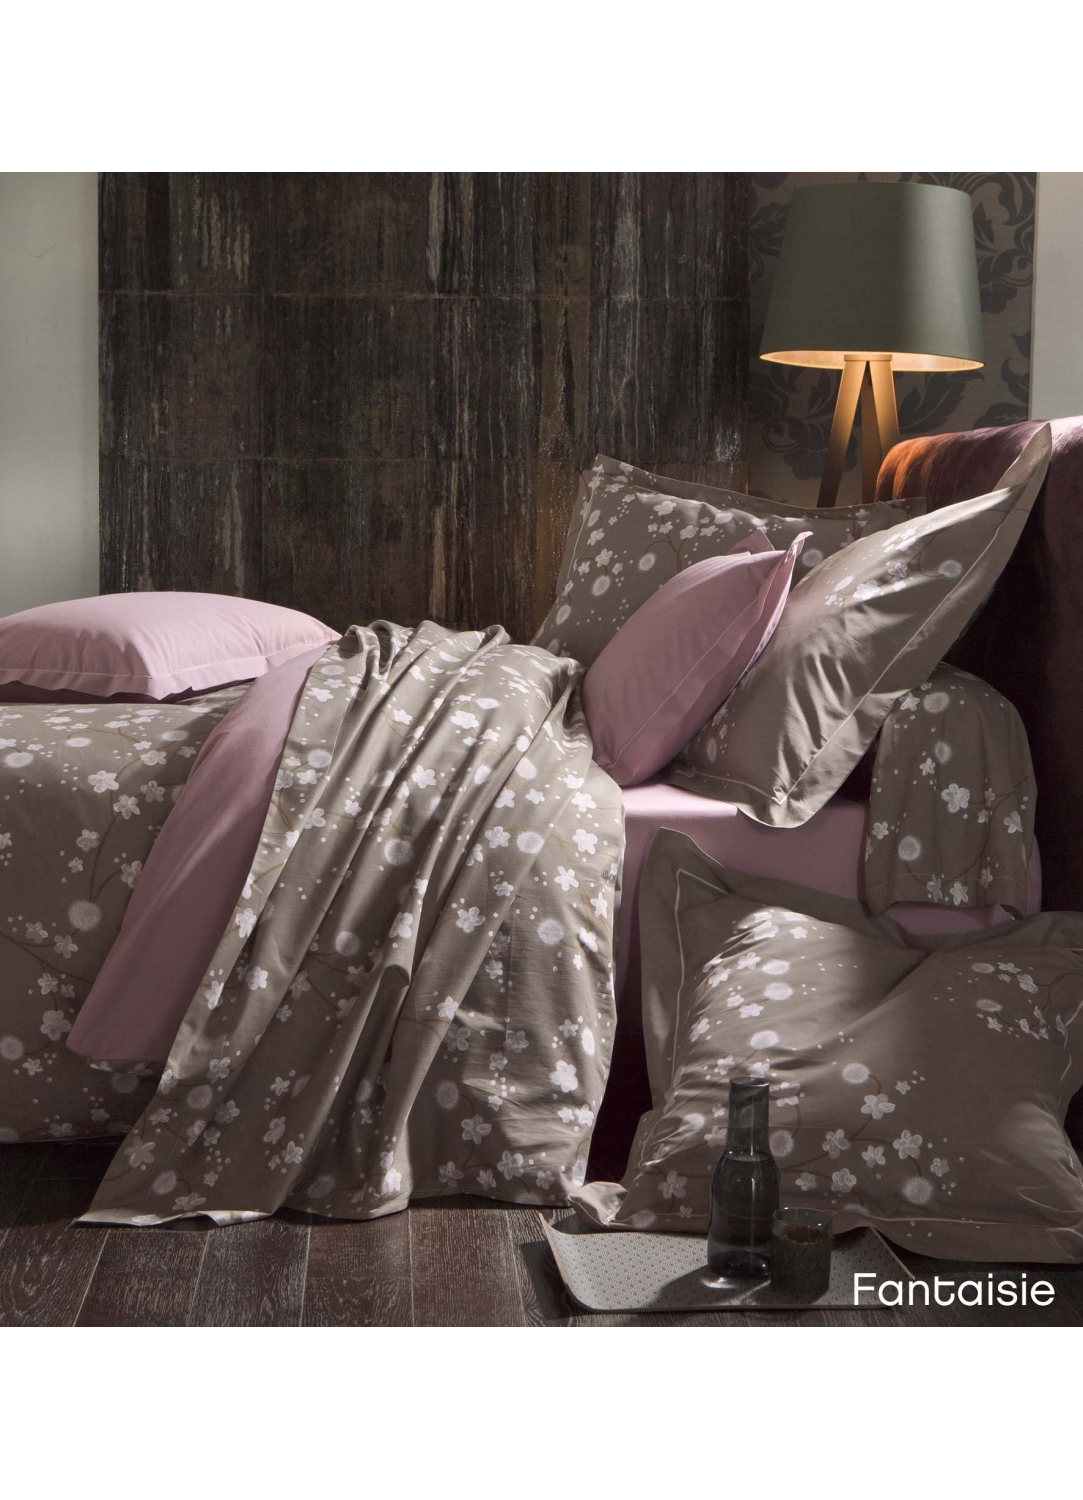 housse aubergine tous les objets de d coration sur elle maison. Black Bedroom Furniture Sets. Home Design Ideas